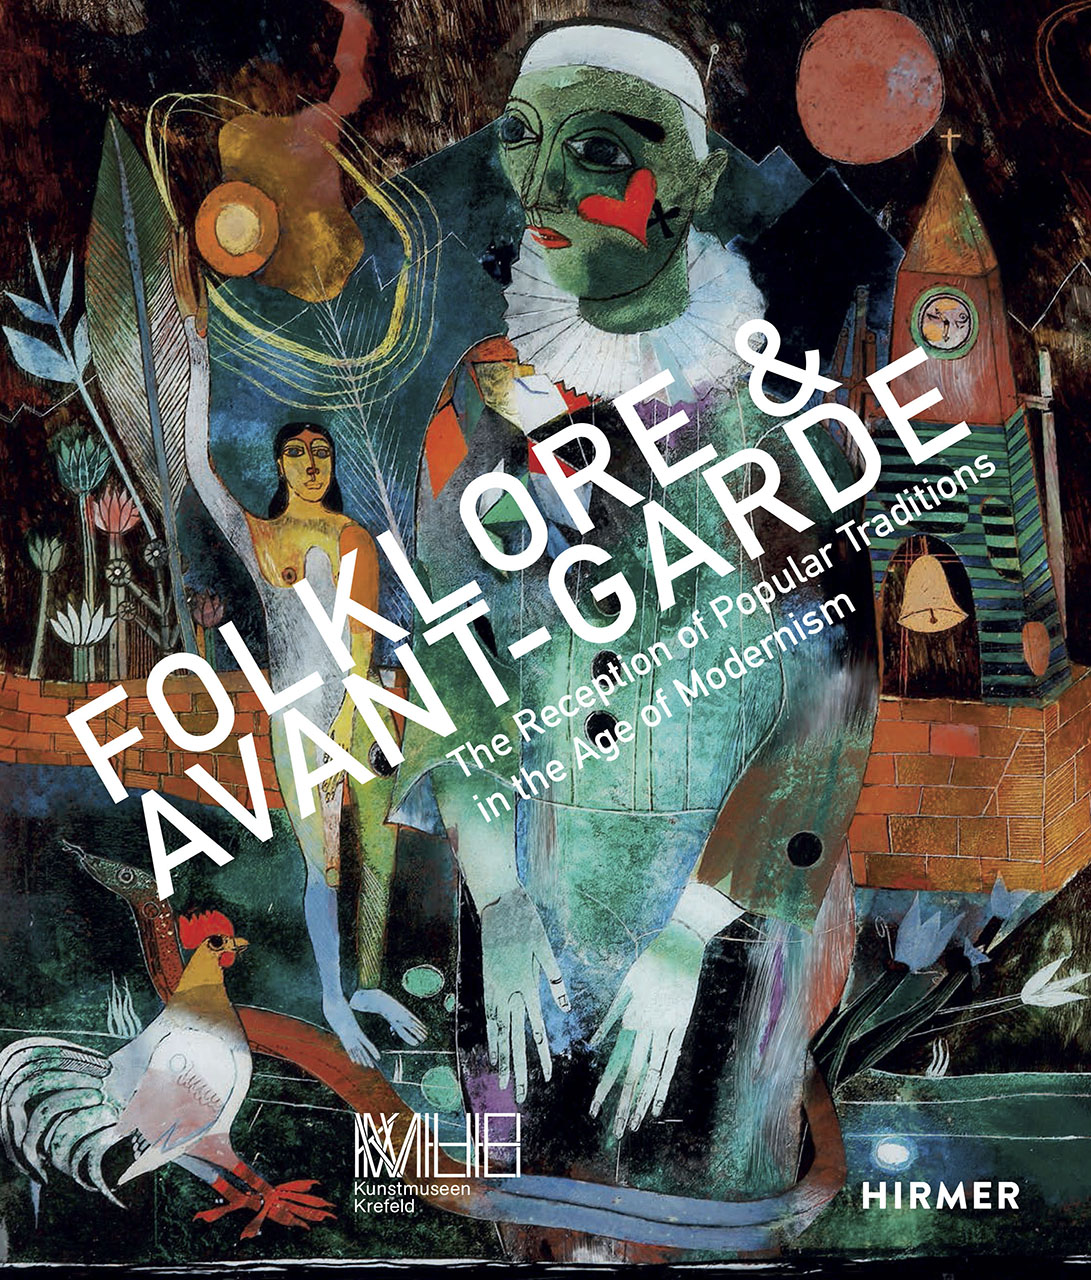 Folklore & Avant-garde: The Reception of Popular Traditions in the Age of Modernism